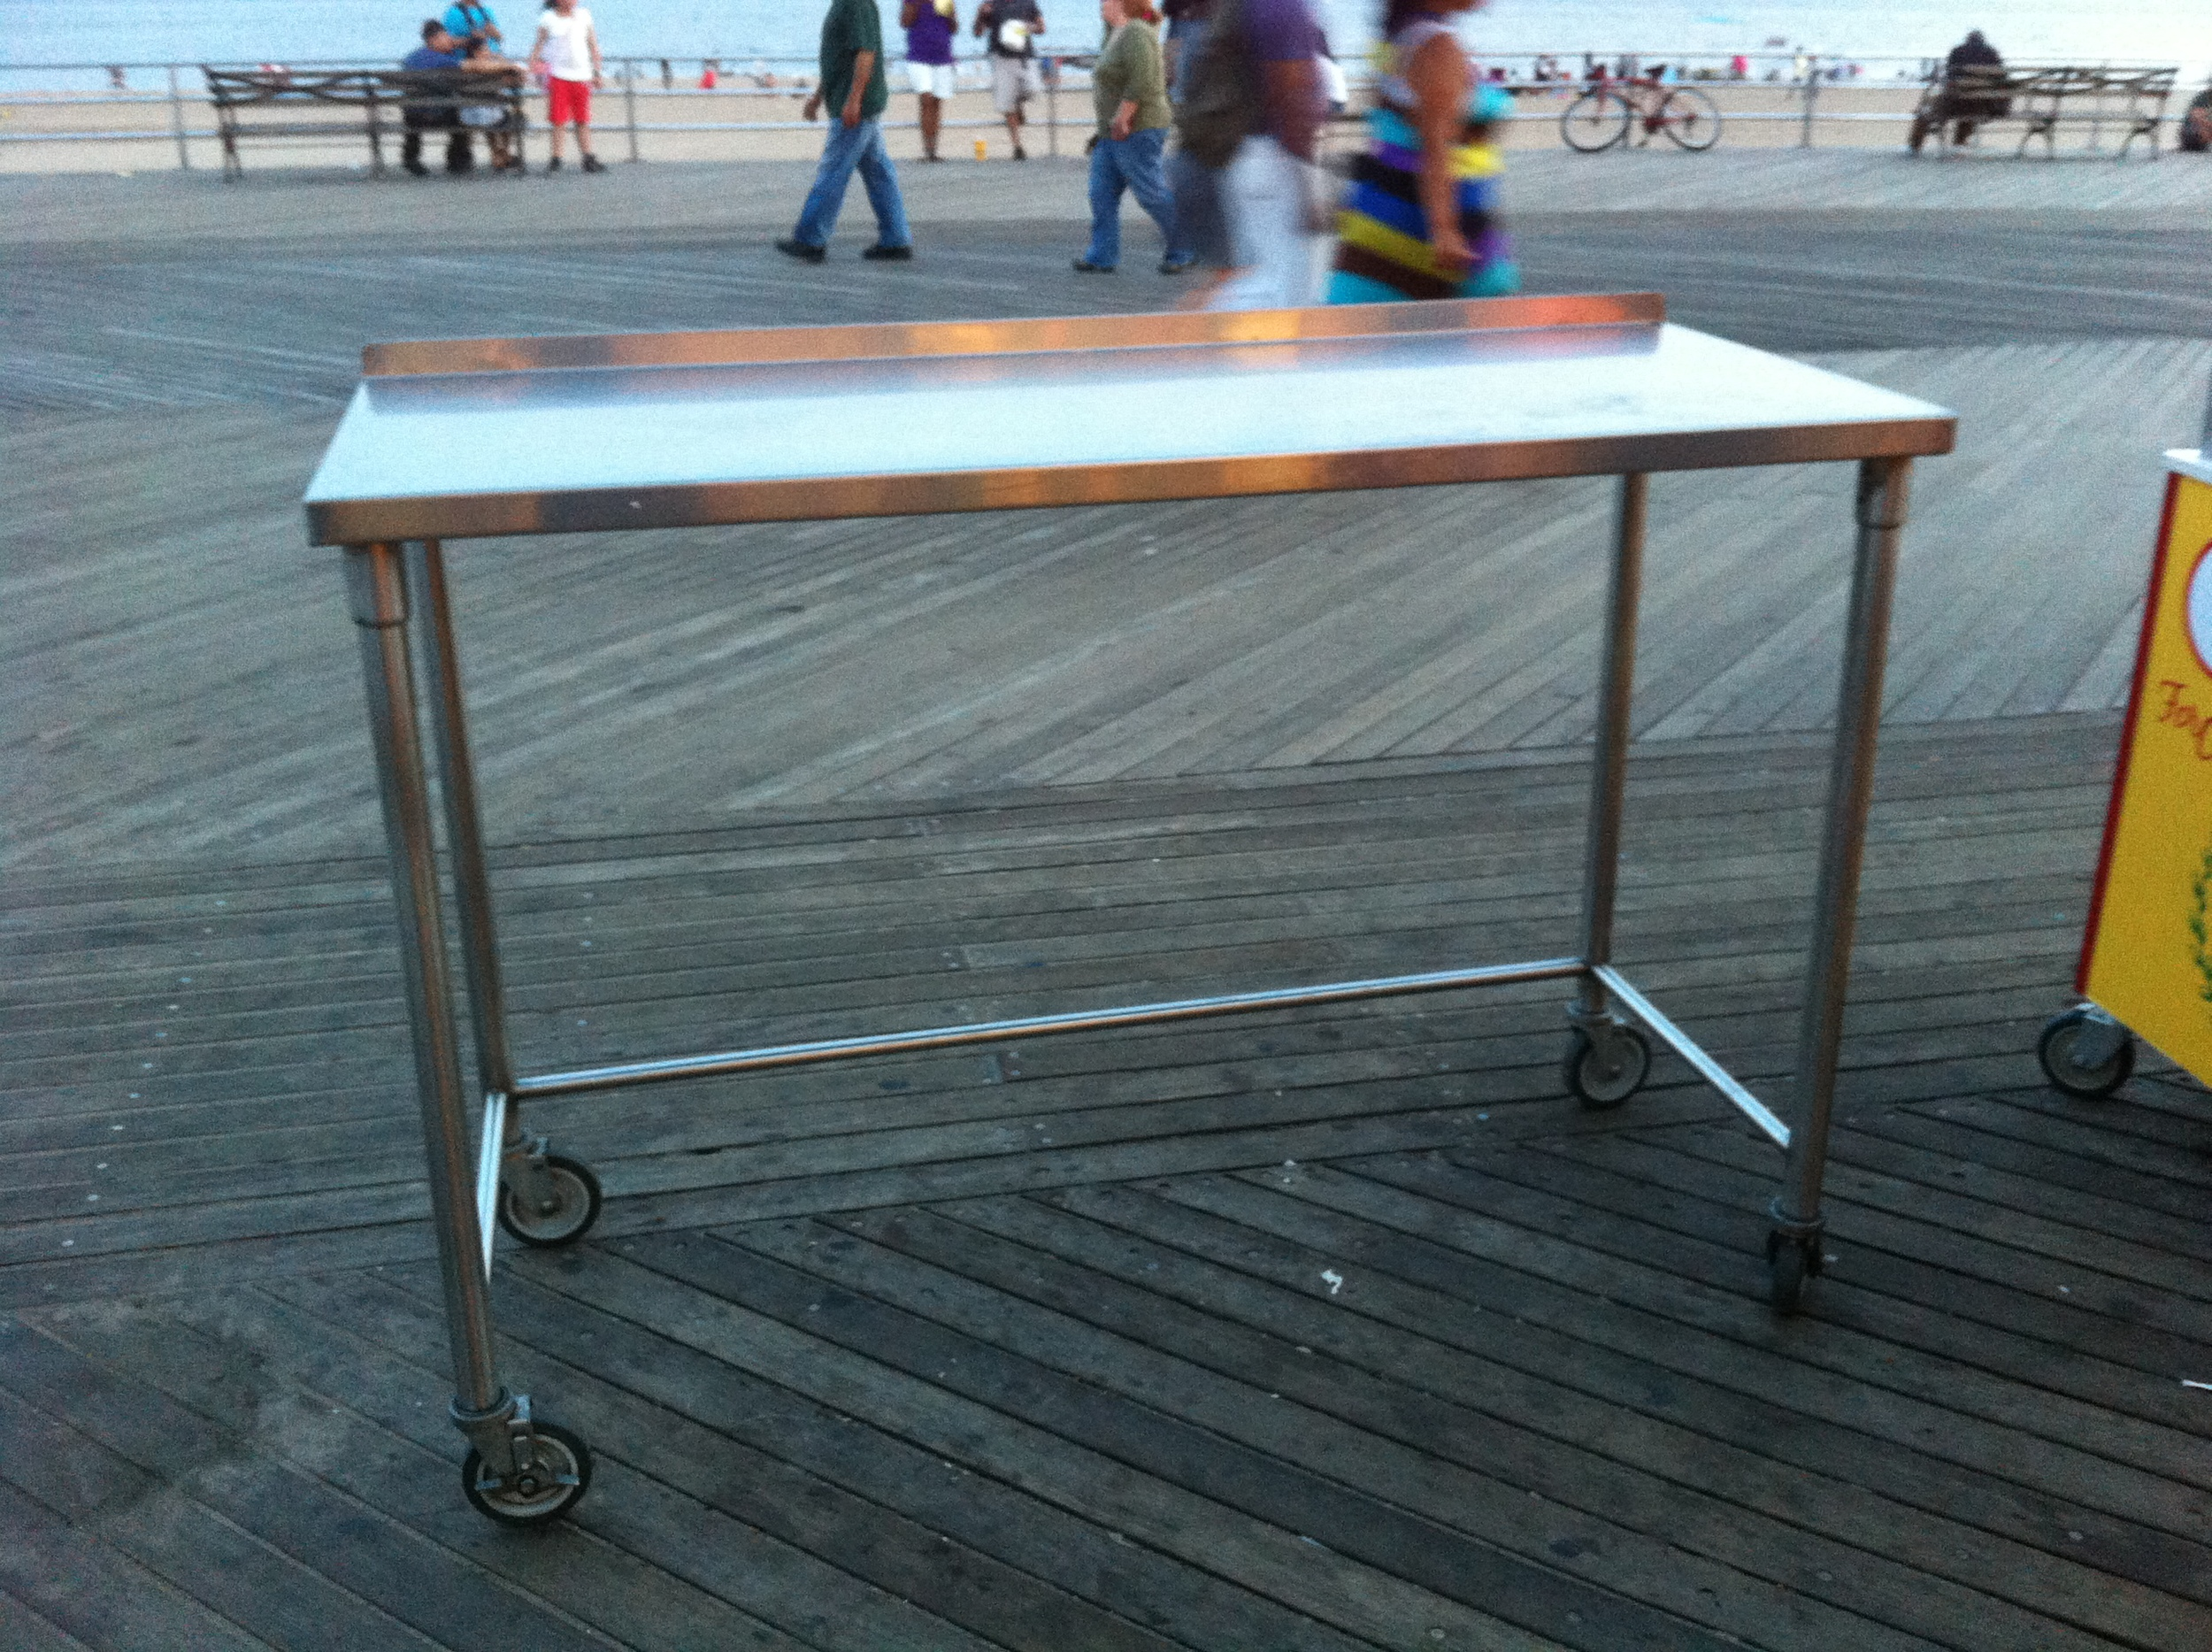 A shot of a stainless steel restaurant table with an 'open base'